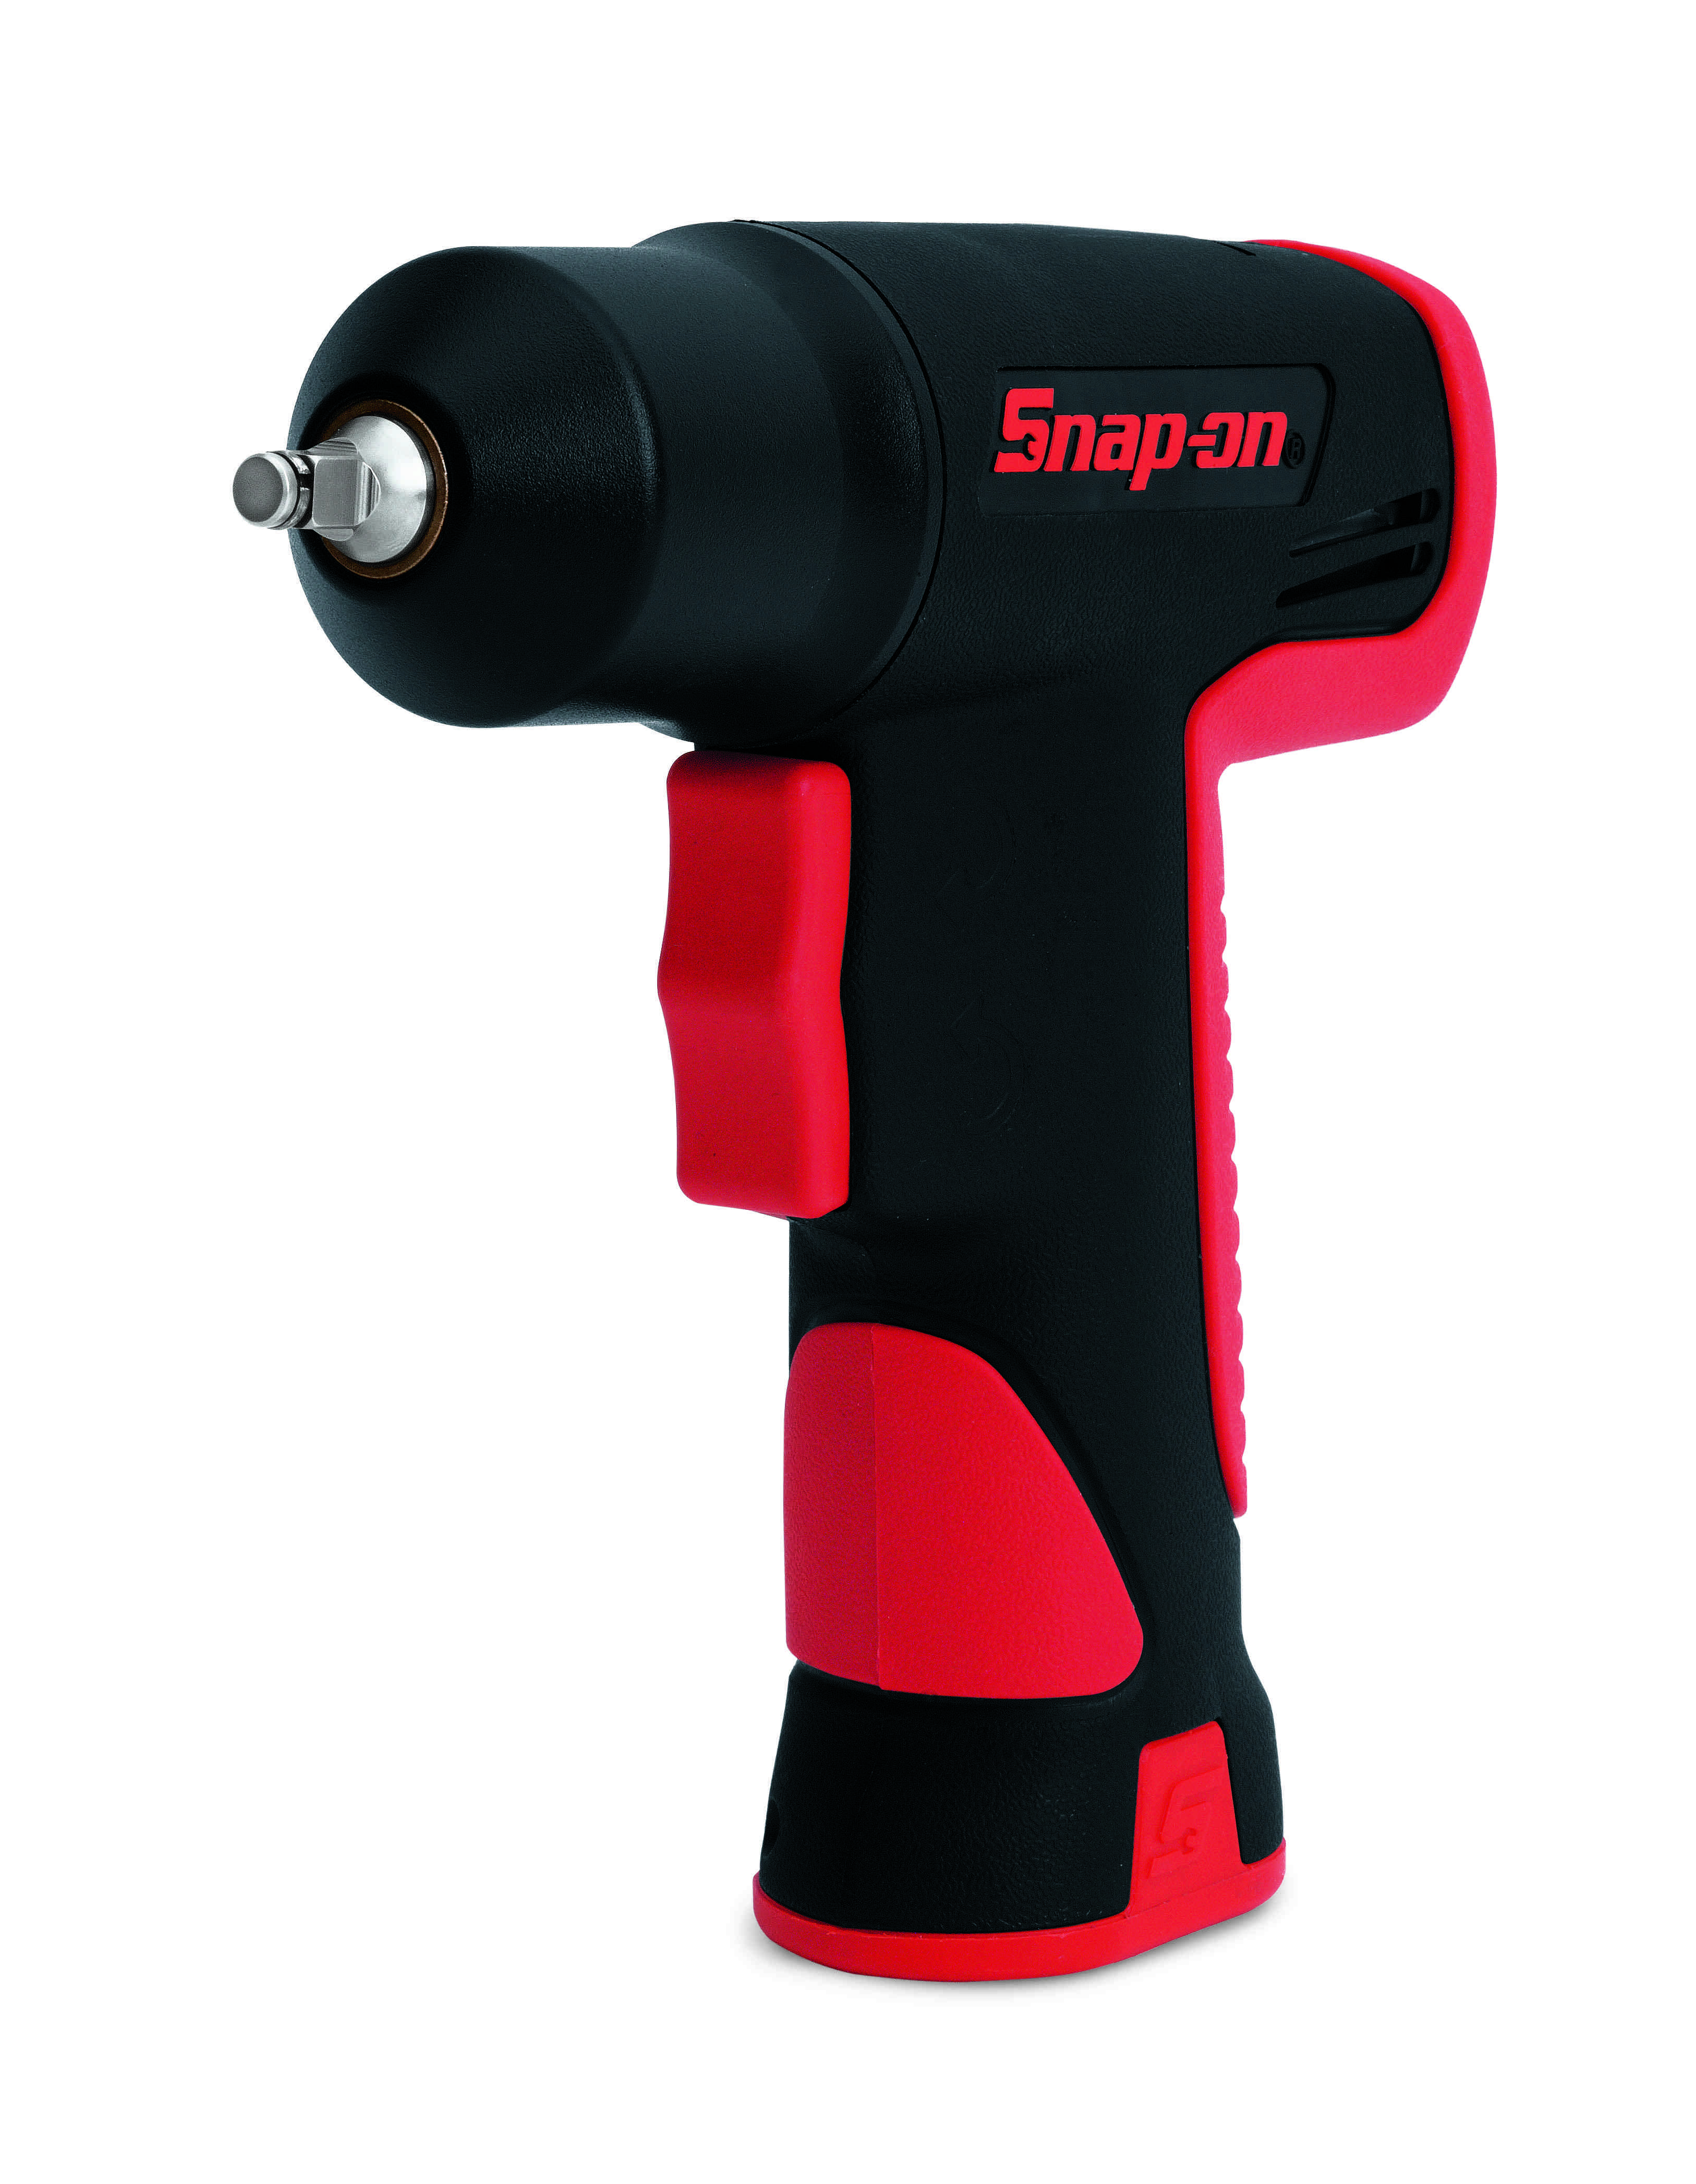 Snap On Offers Cordless Impact Wrench For Tight Spaces